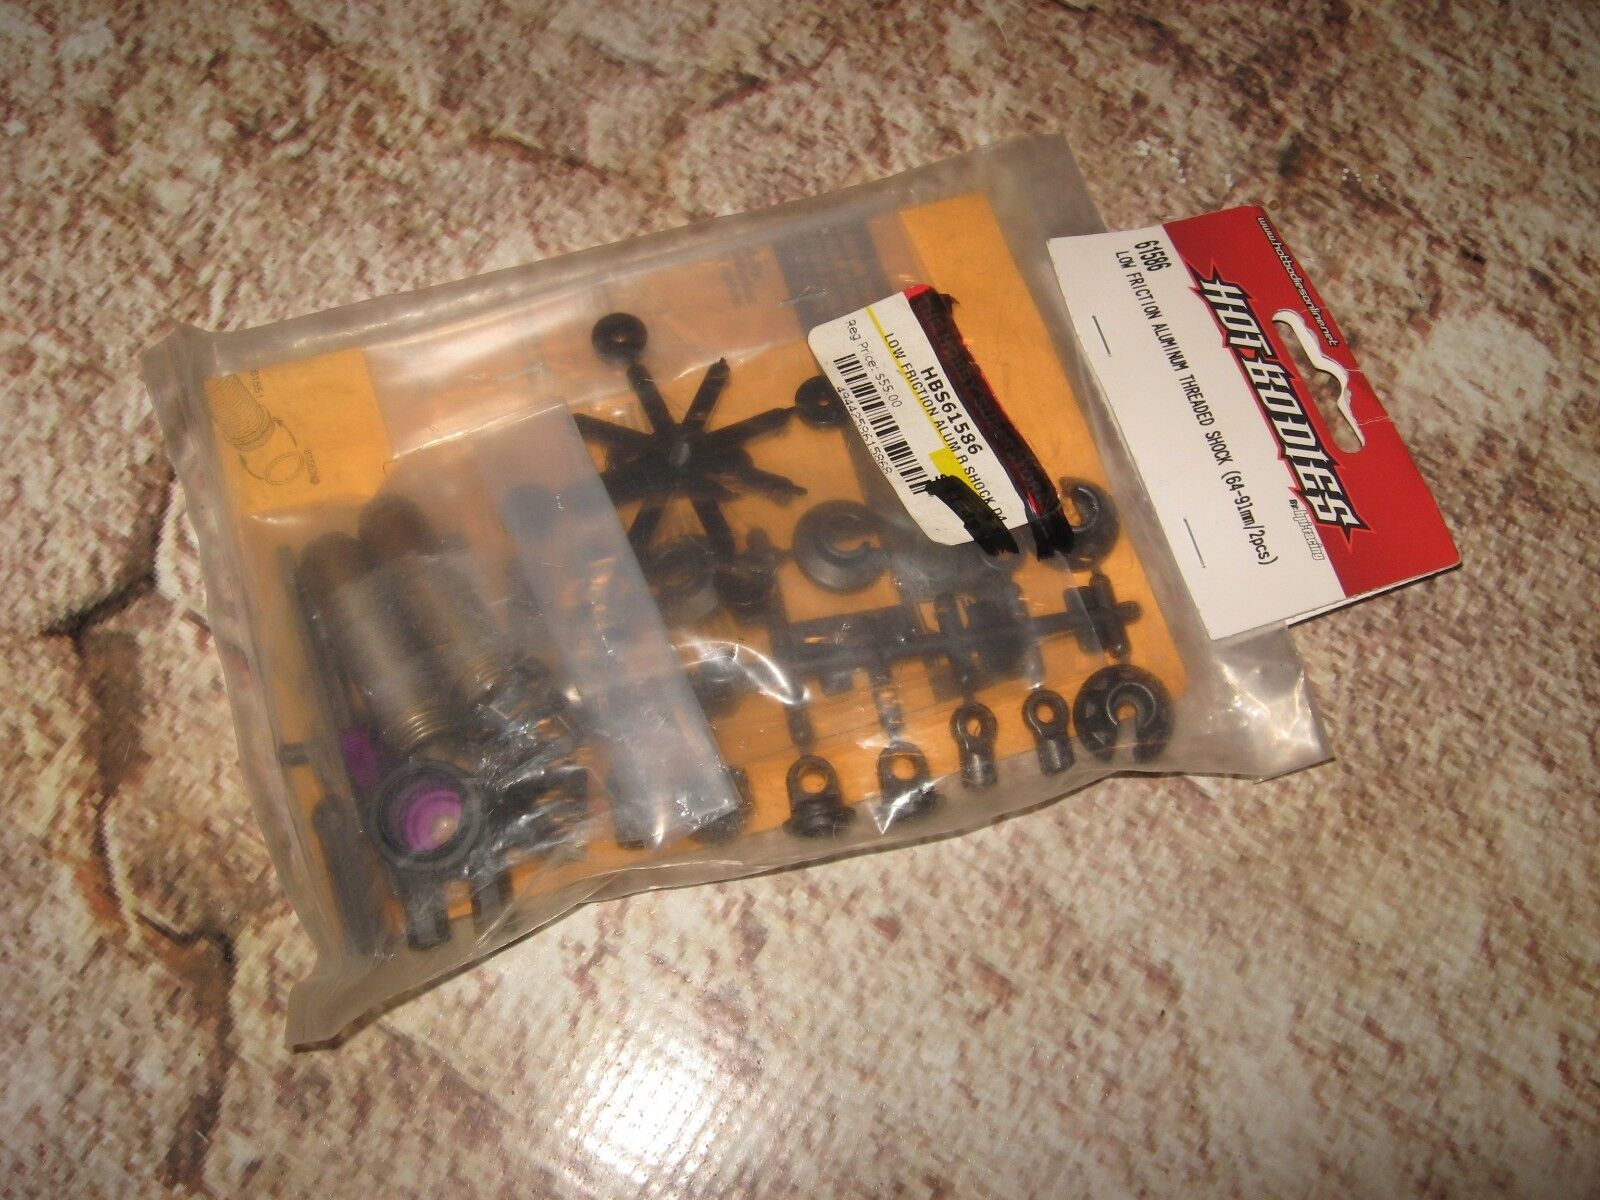 Vintage RC Amortiguadores roscados Hpi Hot Bodies Racing 64 - 91 mm (2) 61586